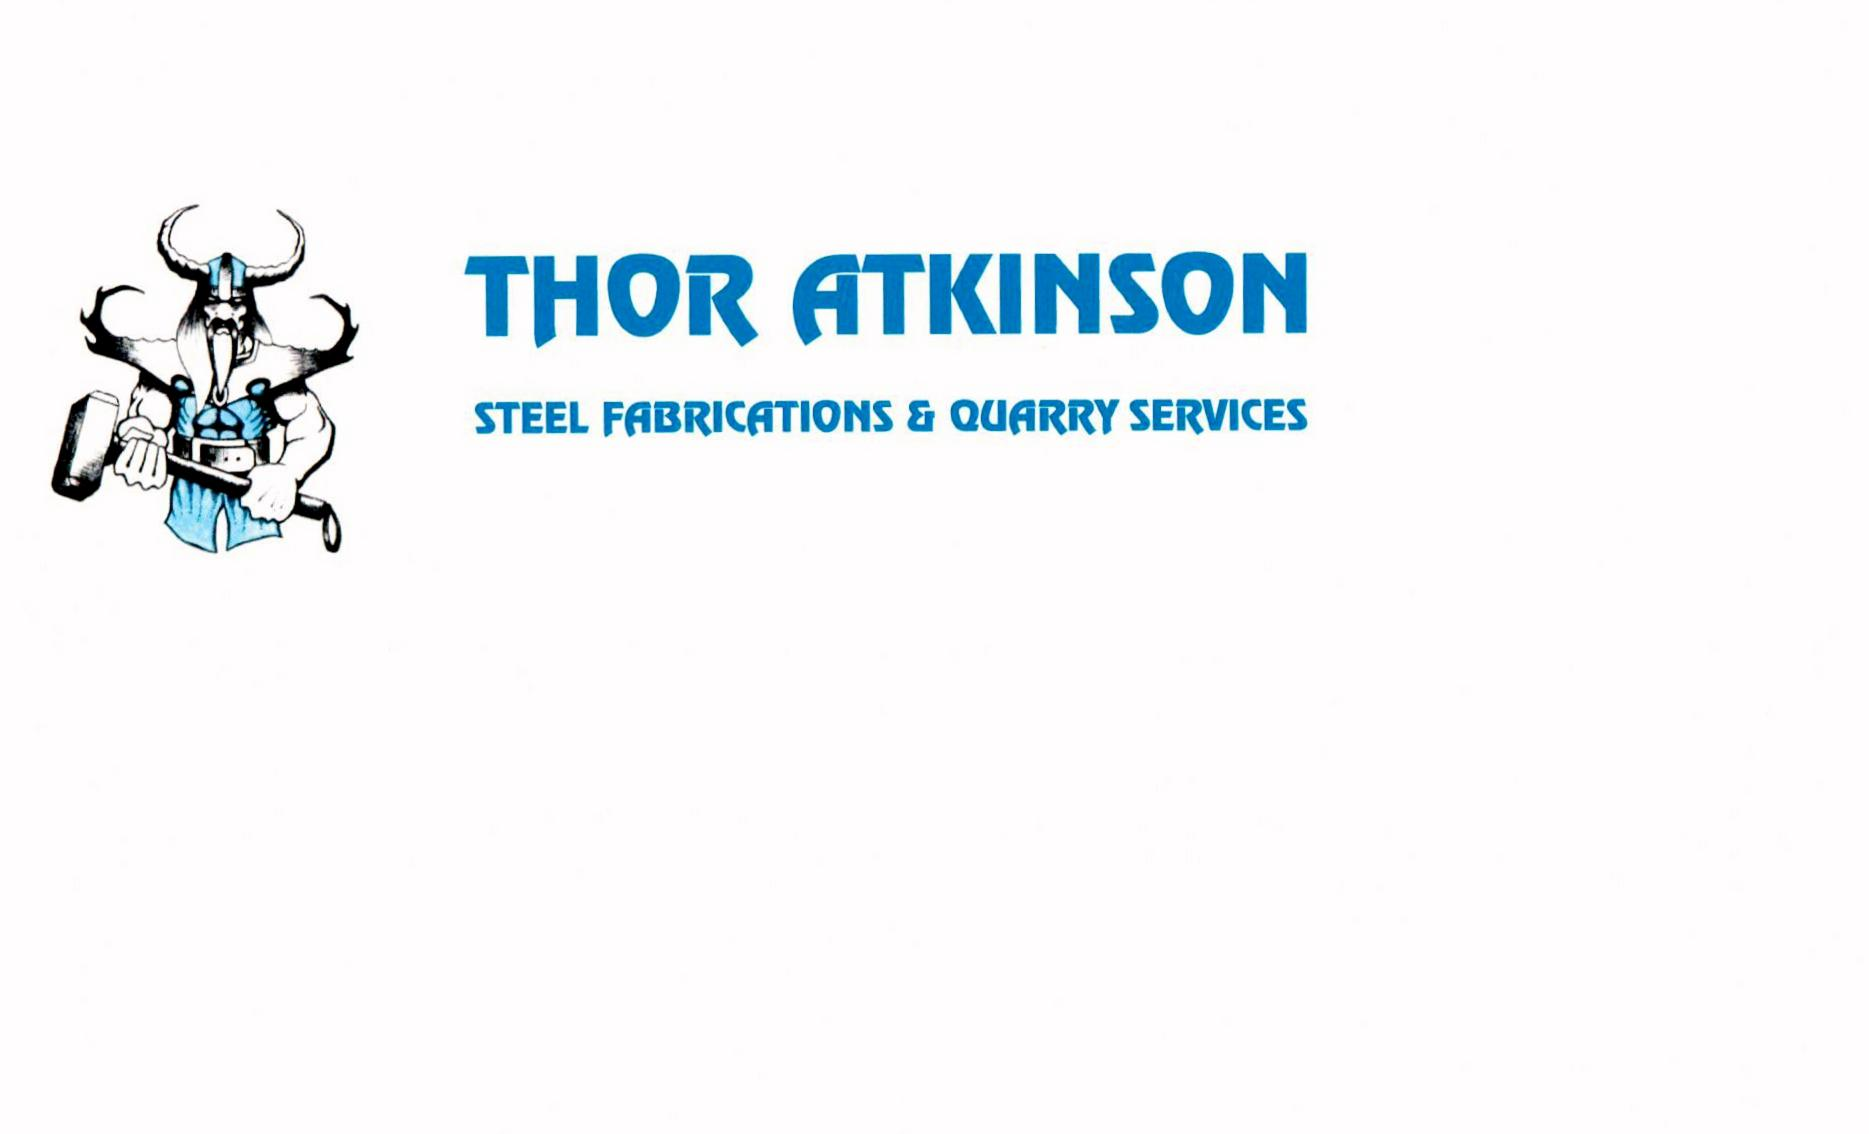 Thor Atkinson Steel Fabrications Ltd